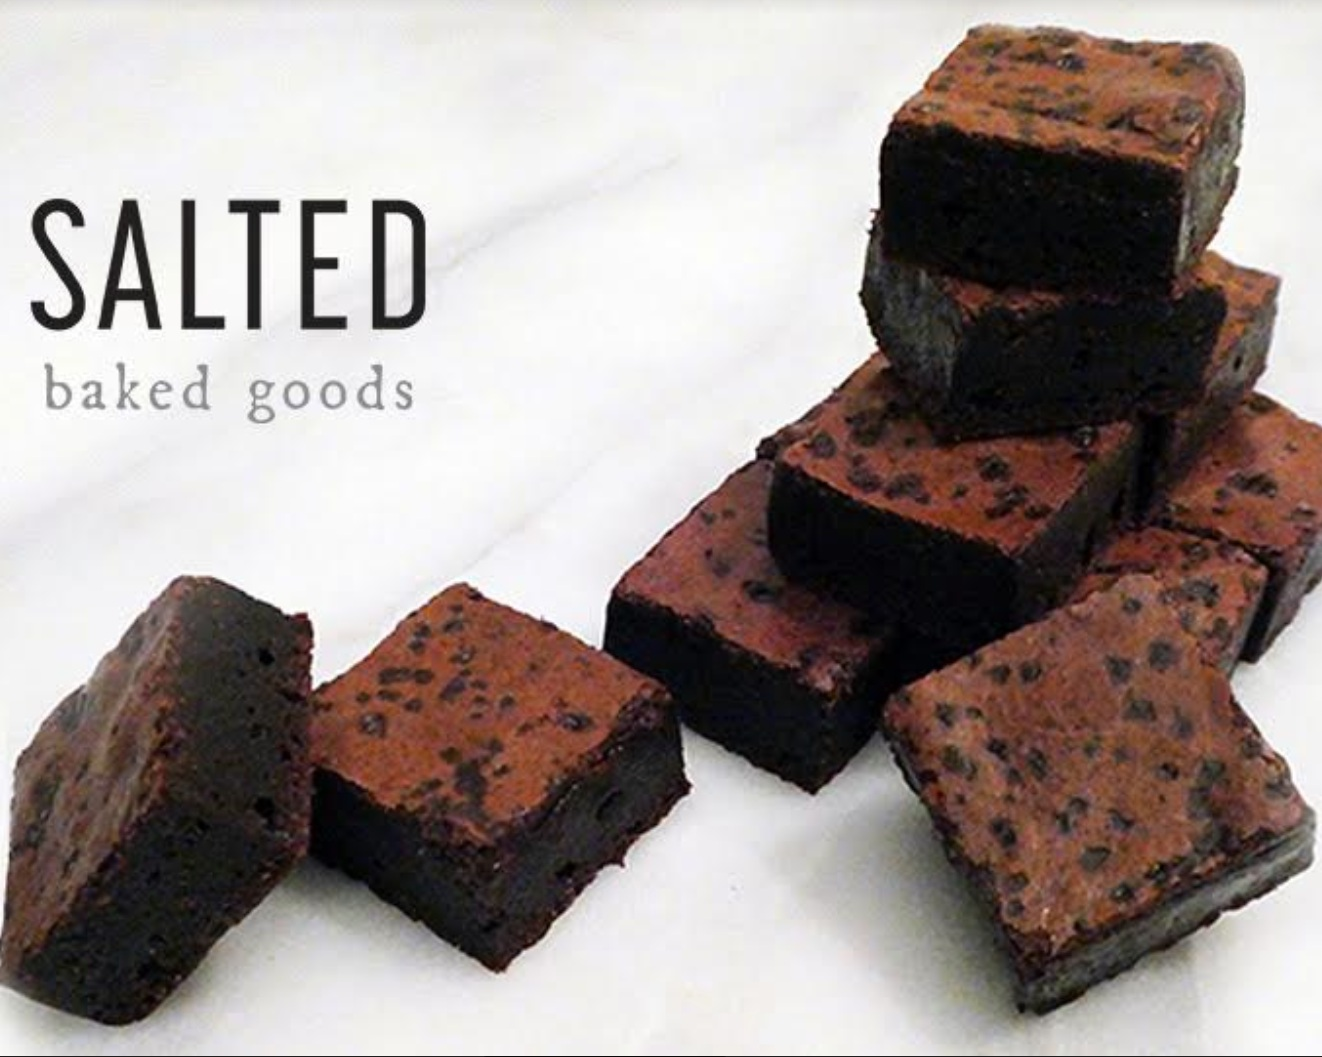 Salted Baked Goods - Baked goods with a special twist of salt along with sugary goodness